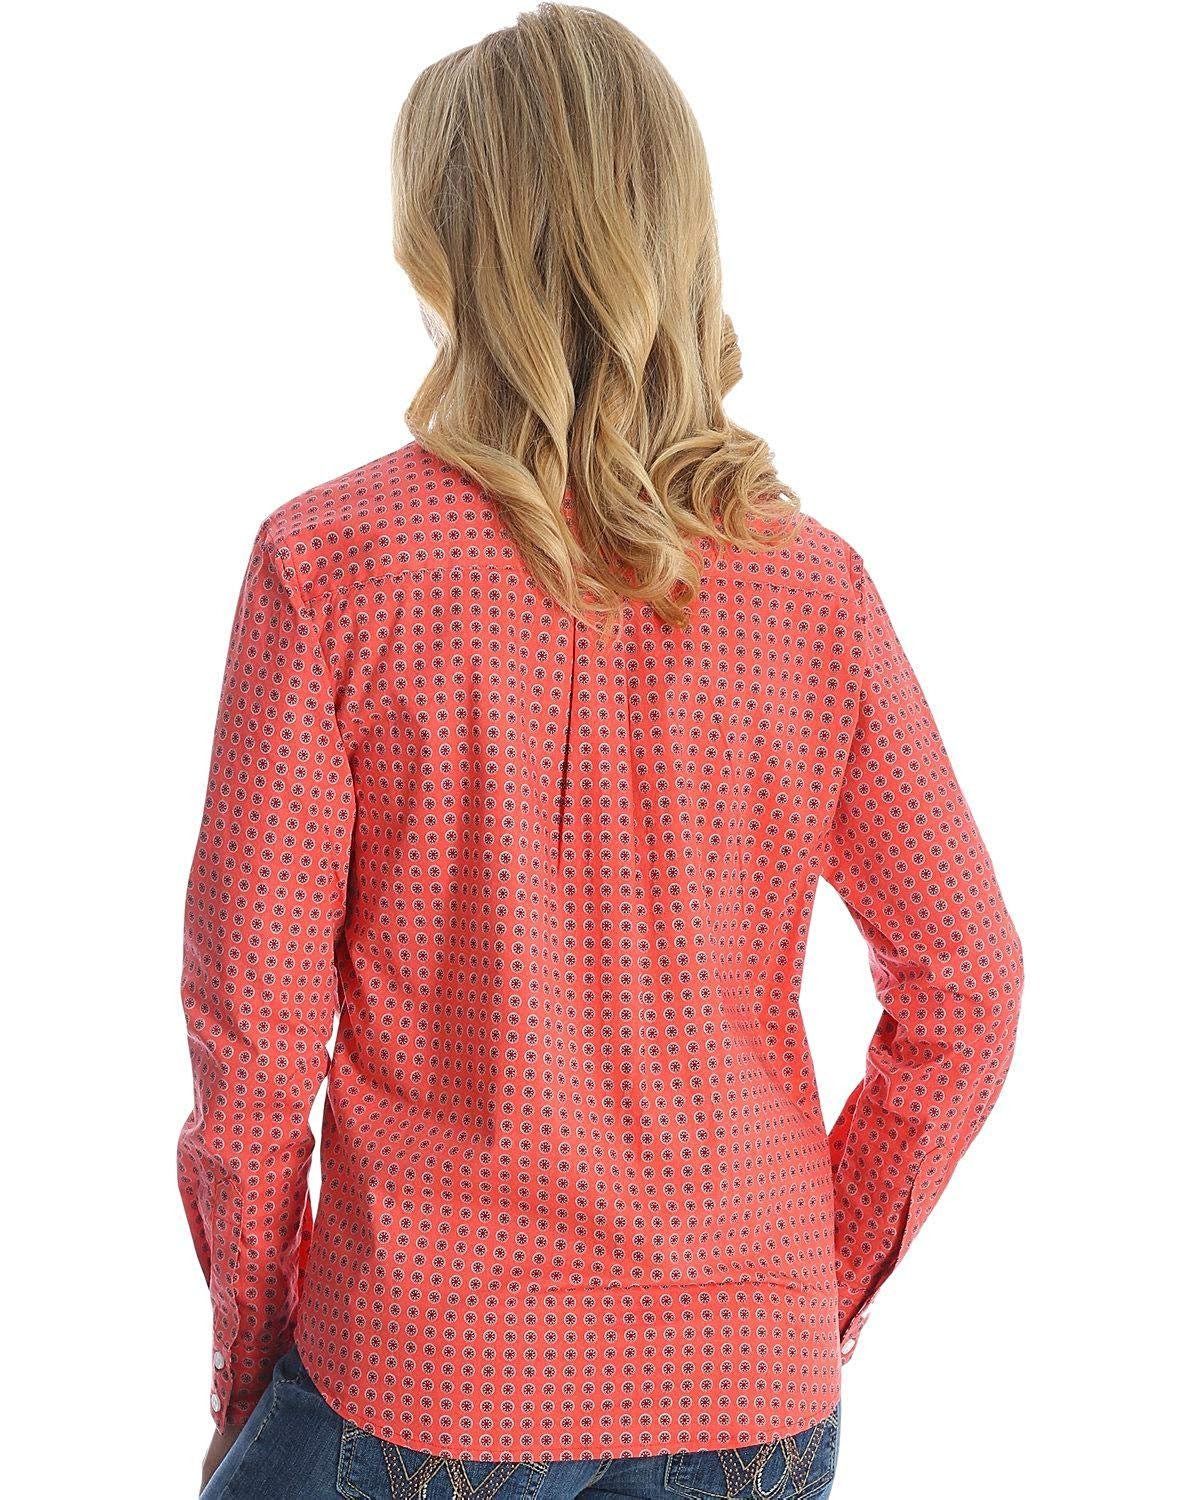 237f2bbe Wrangler Women's George Strait For Her Western Shirt- Peach Print. Product  Details